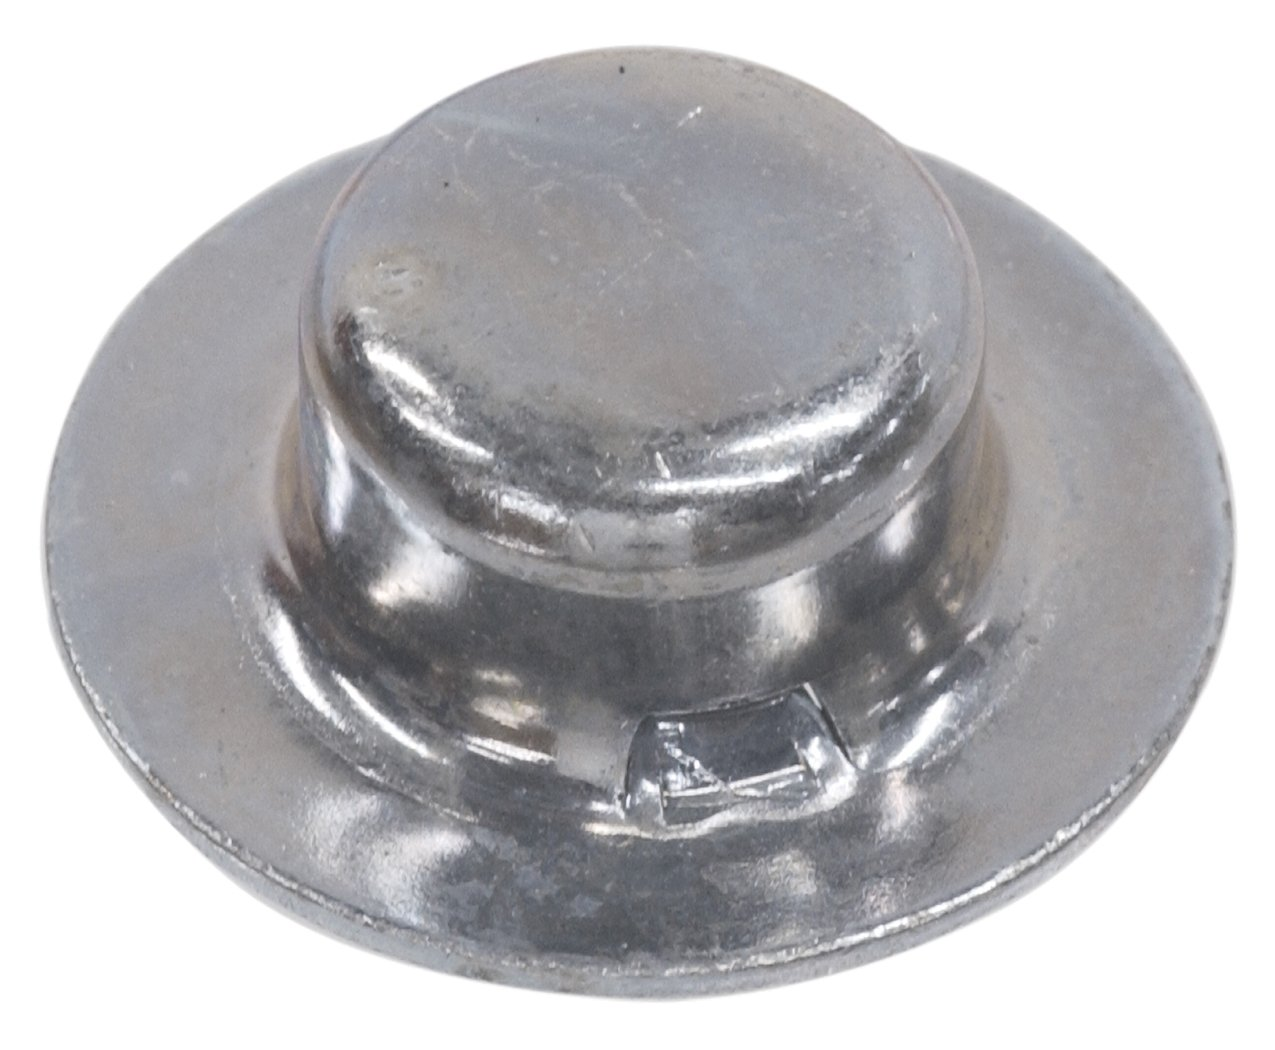 The Hillman Group The Hillman Group 885 Axle Pushnut Fastener 1/4 In. 30-Pack